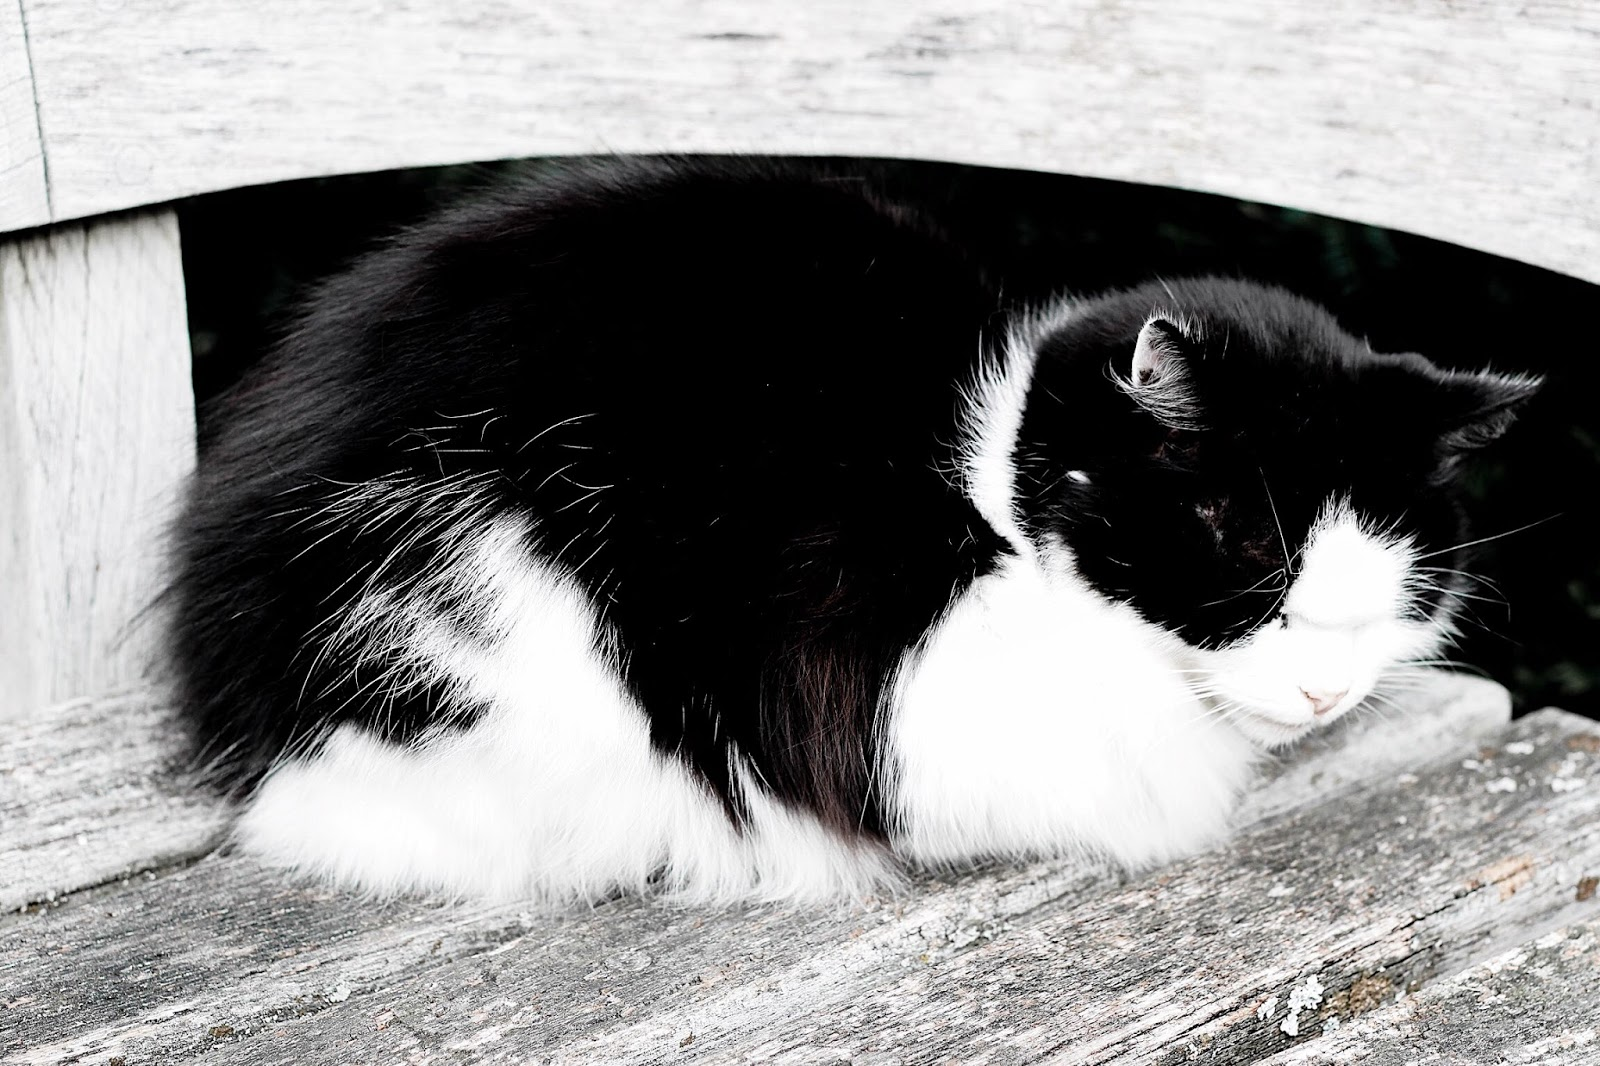 Adorable curled up black and white cat